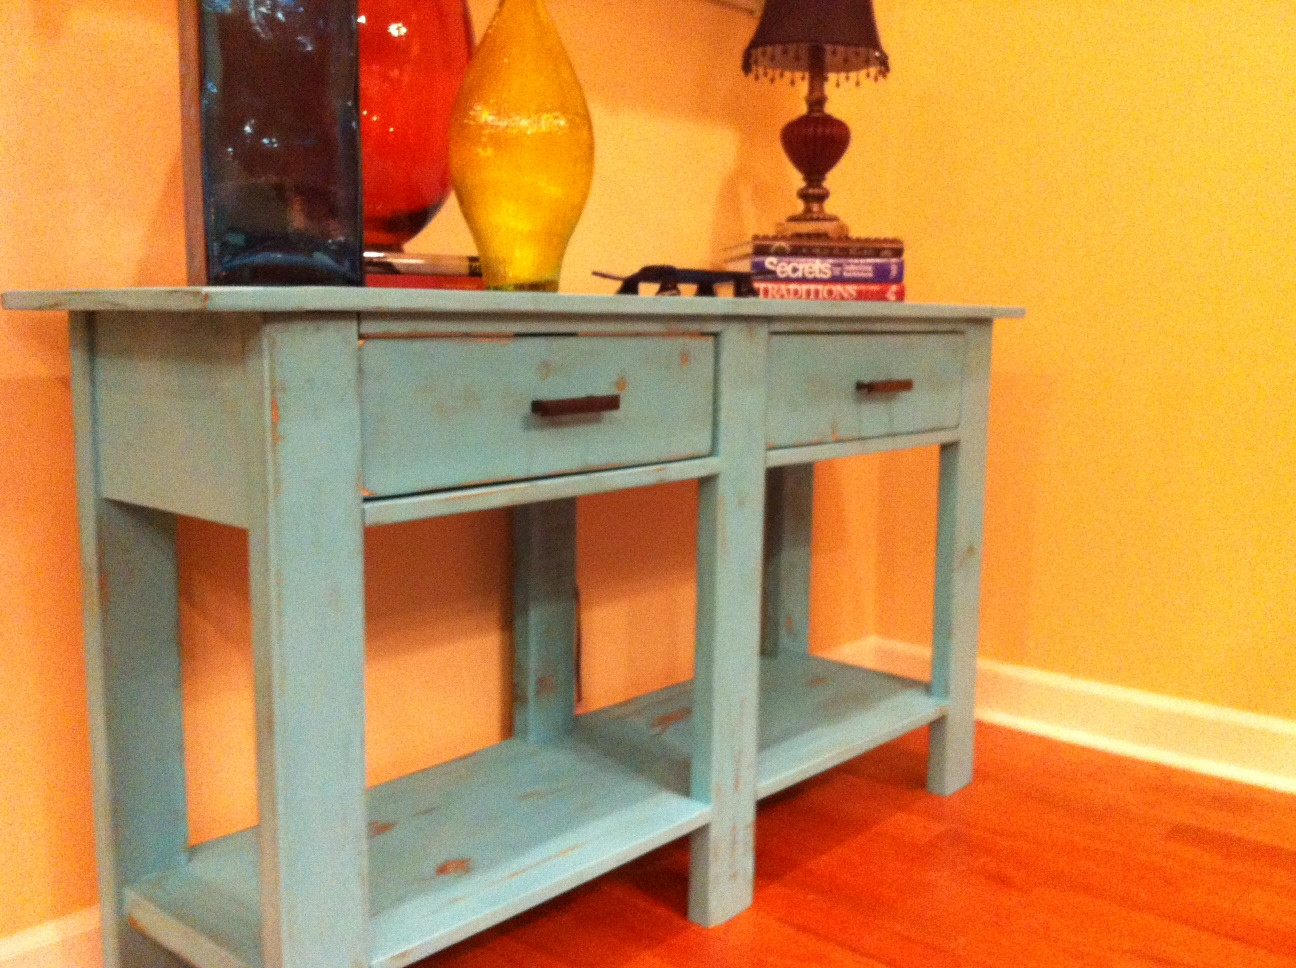 Best ideas about Console Table DIY . Save or Pin Ana White Now.